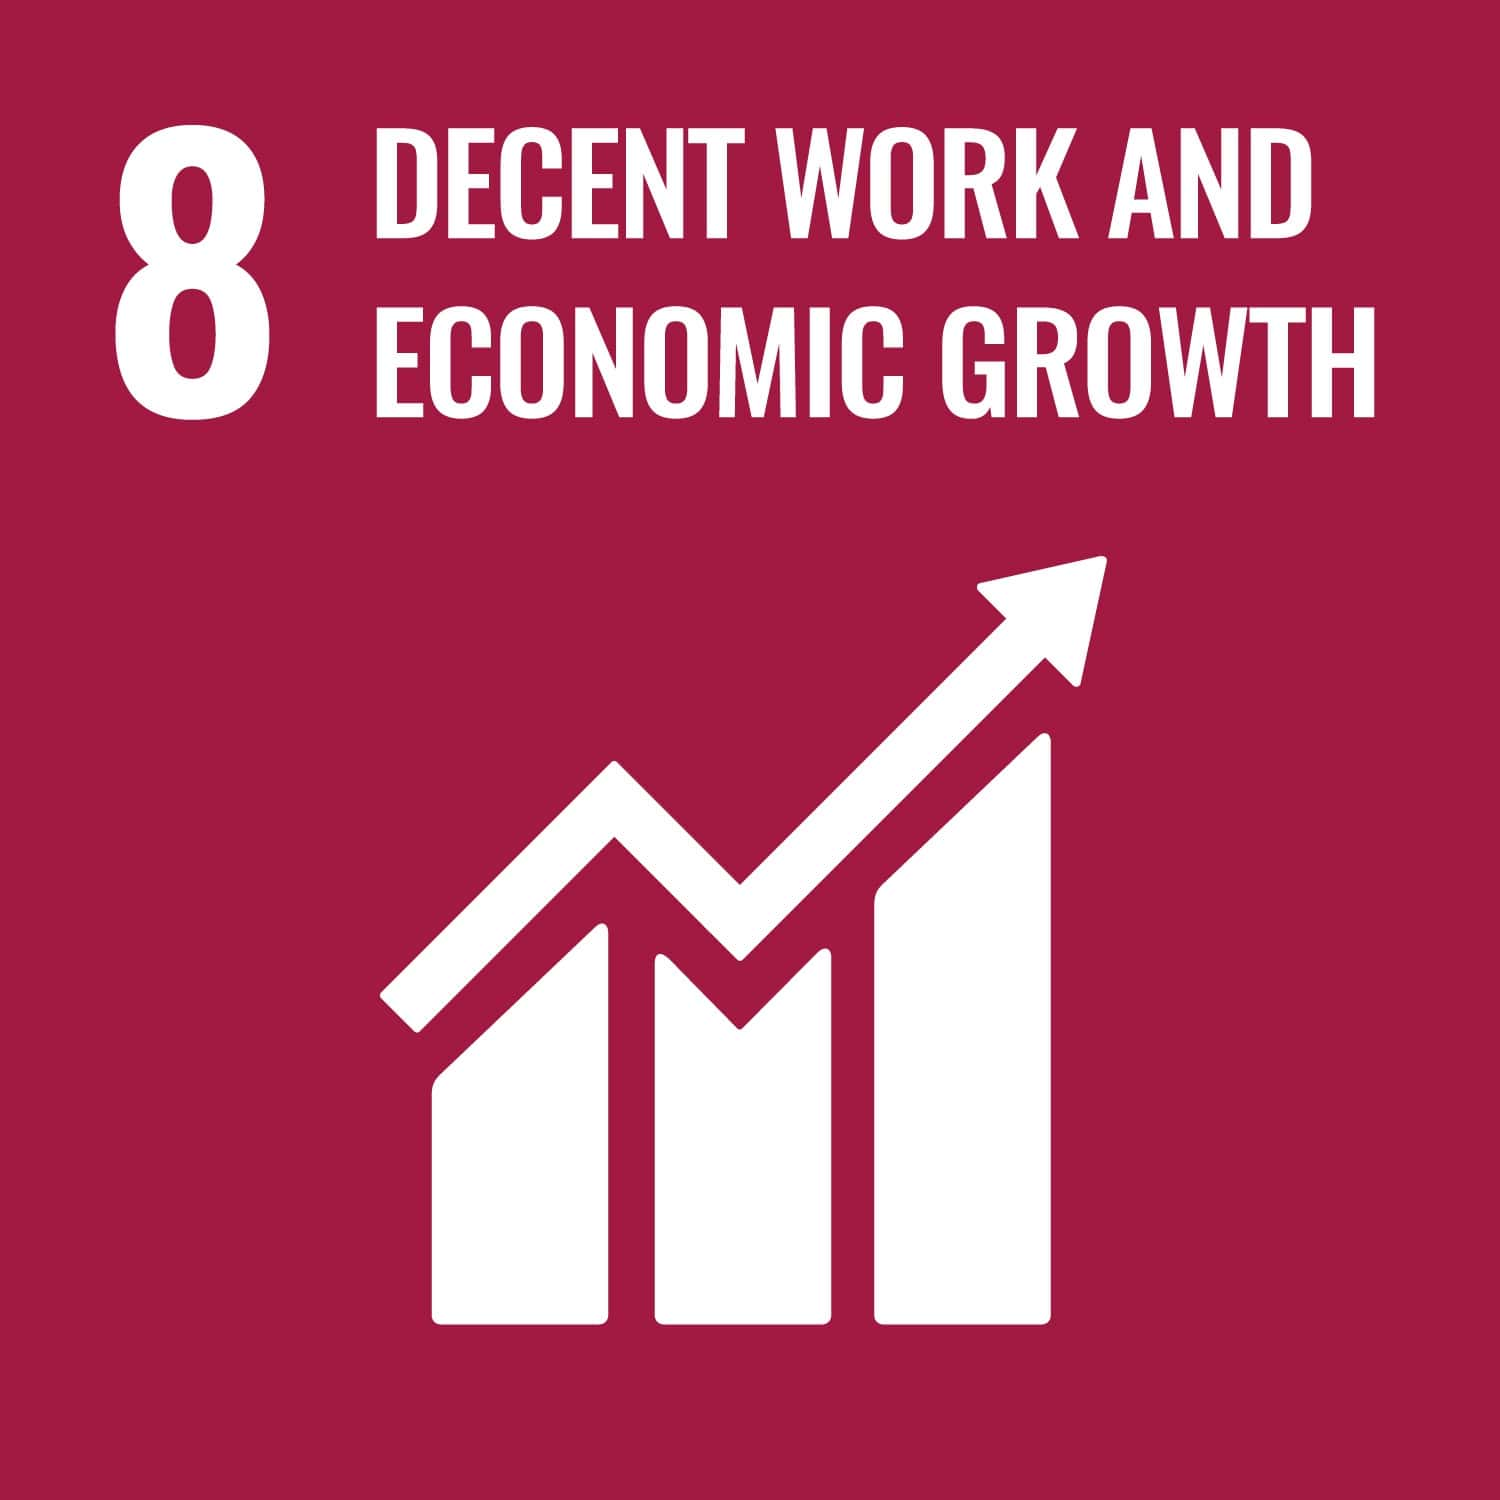 UN logo for decent work and economic growth